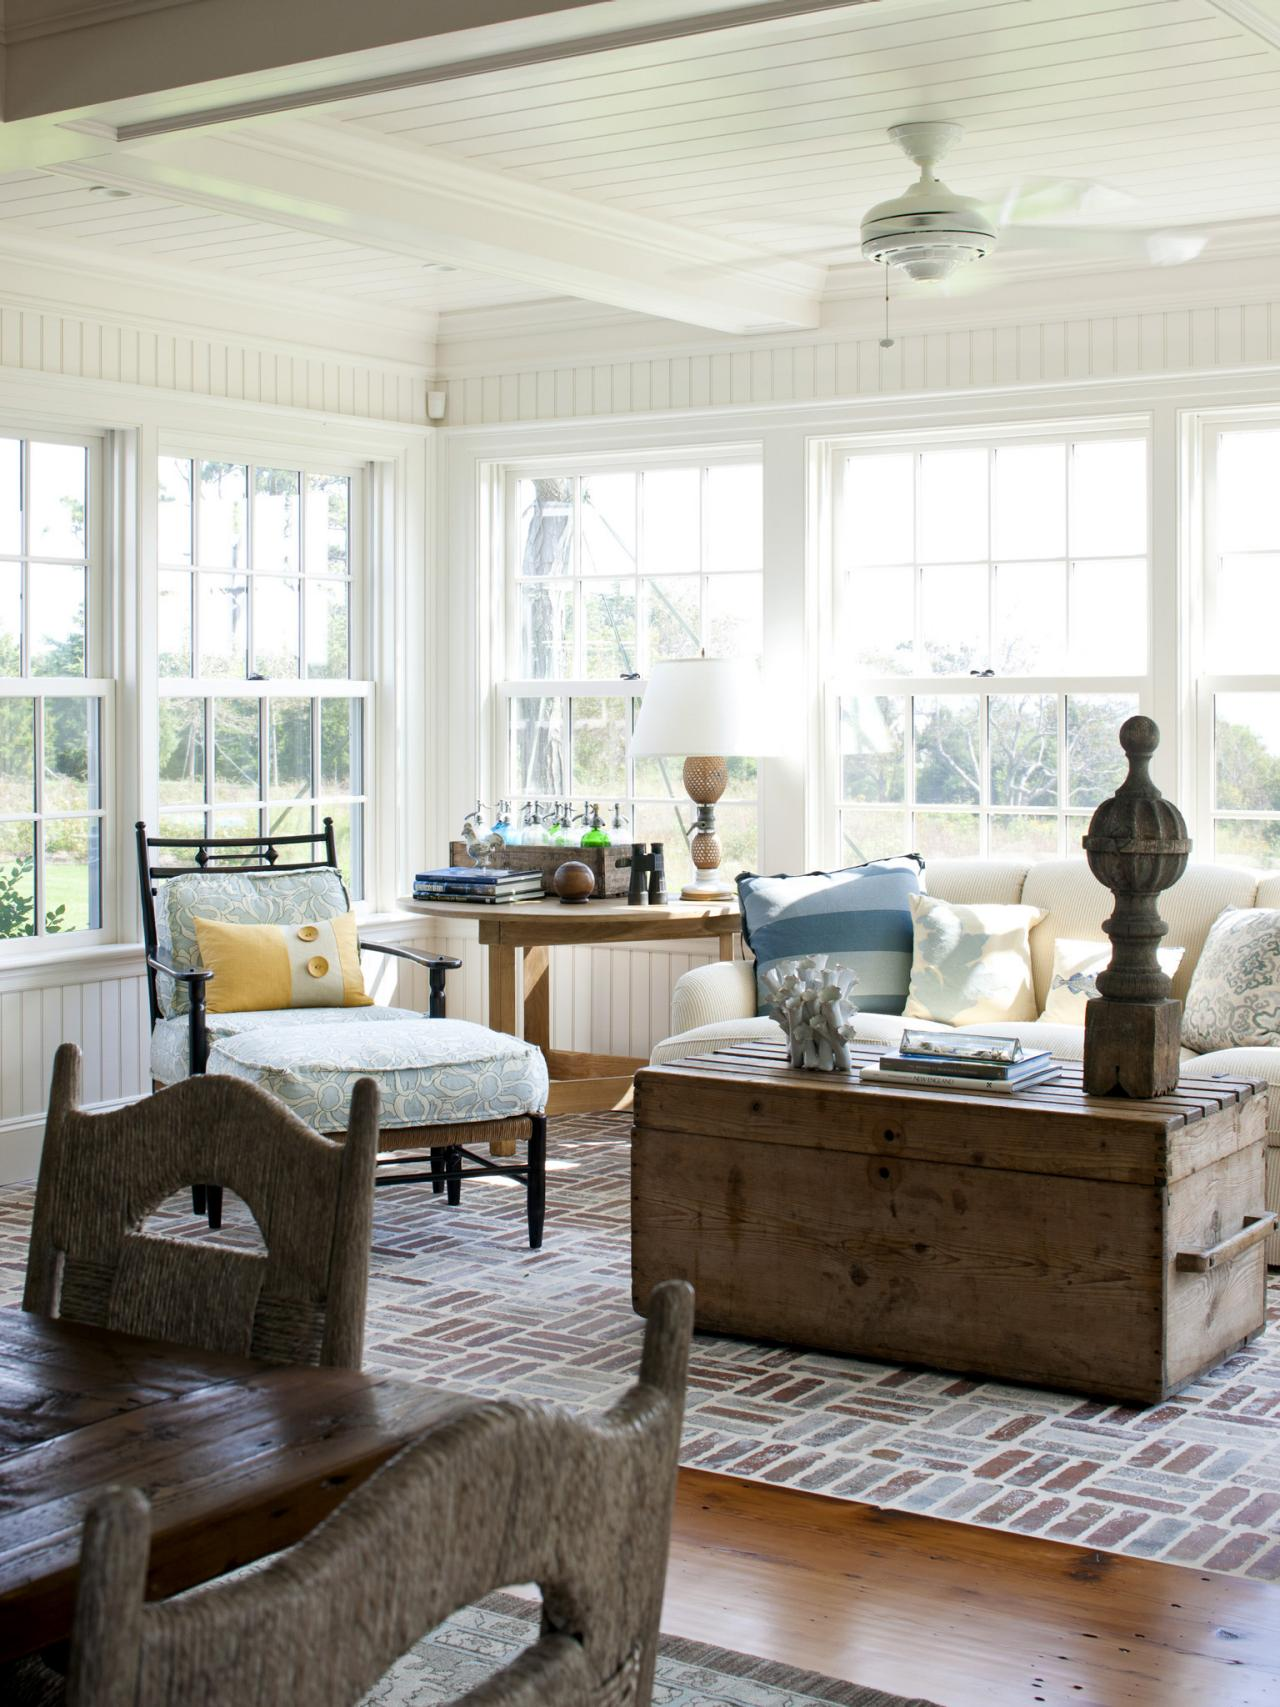 26 Gorgeous Sunroom Design Ideas | HGTV\'s Decorating & Design Blog ...